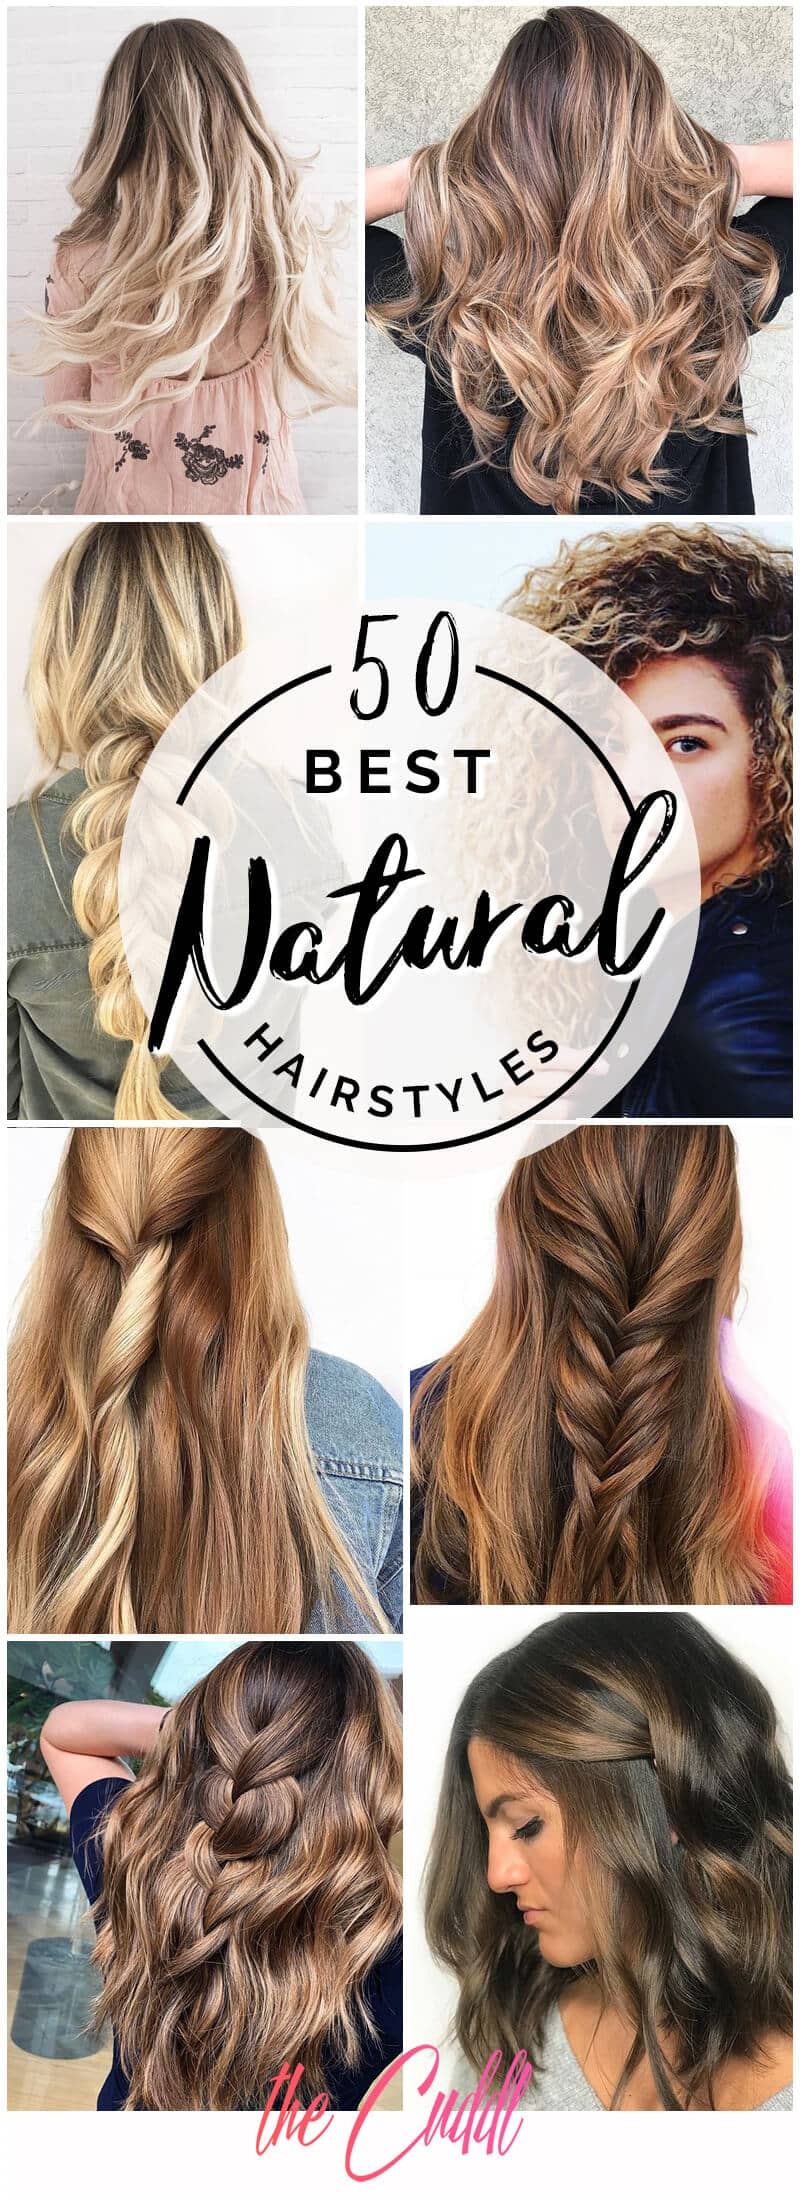 Best 50 Natural Hairstyle Ideas You'll Flip For